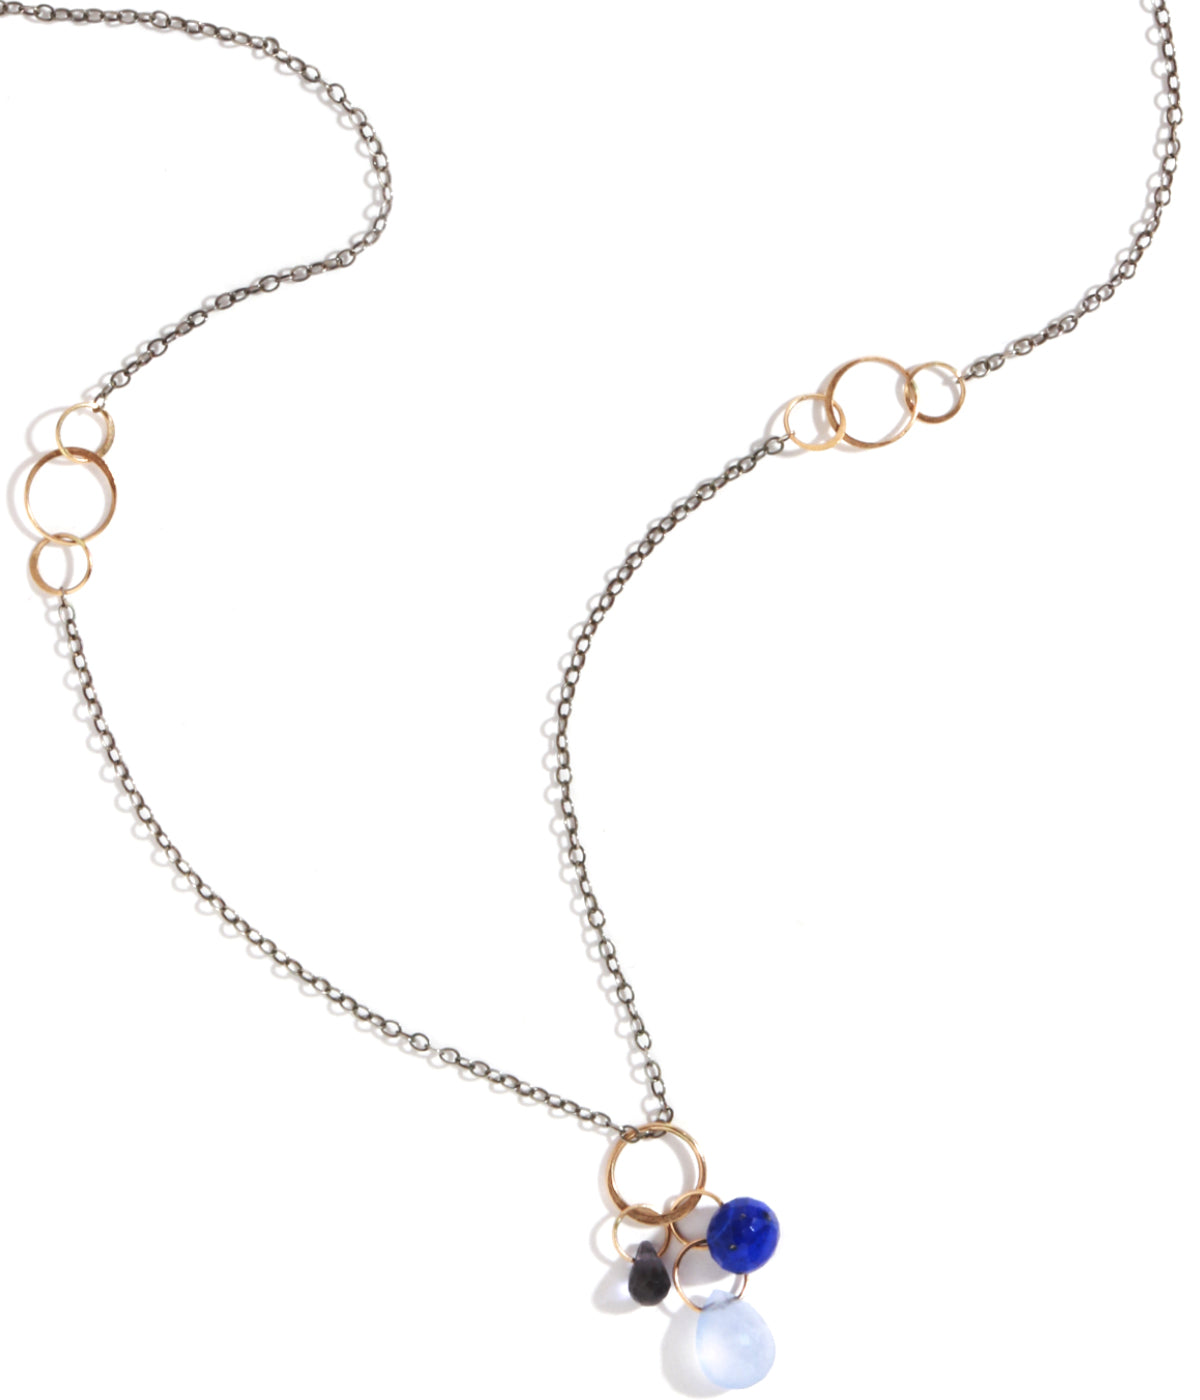 Iolite, Lapis, and Chalcedony Necklace - Melissa Joy Manning Jewelry